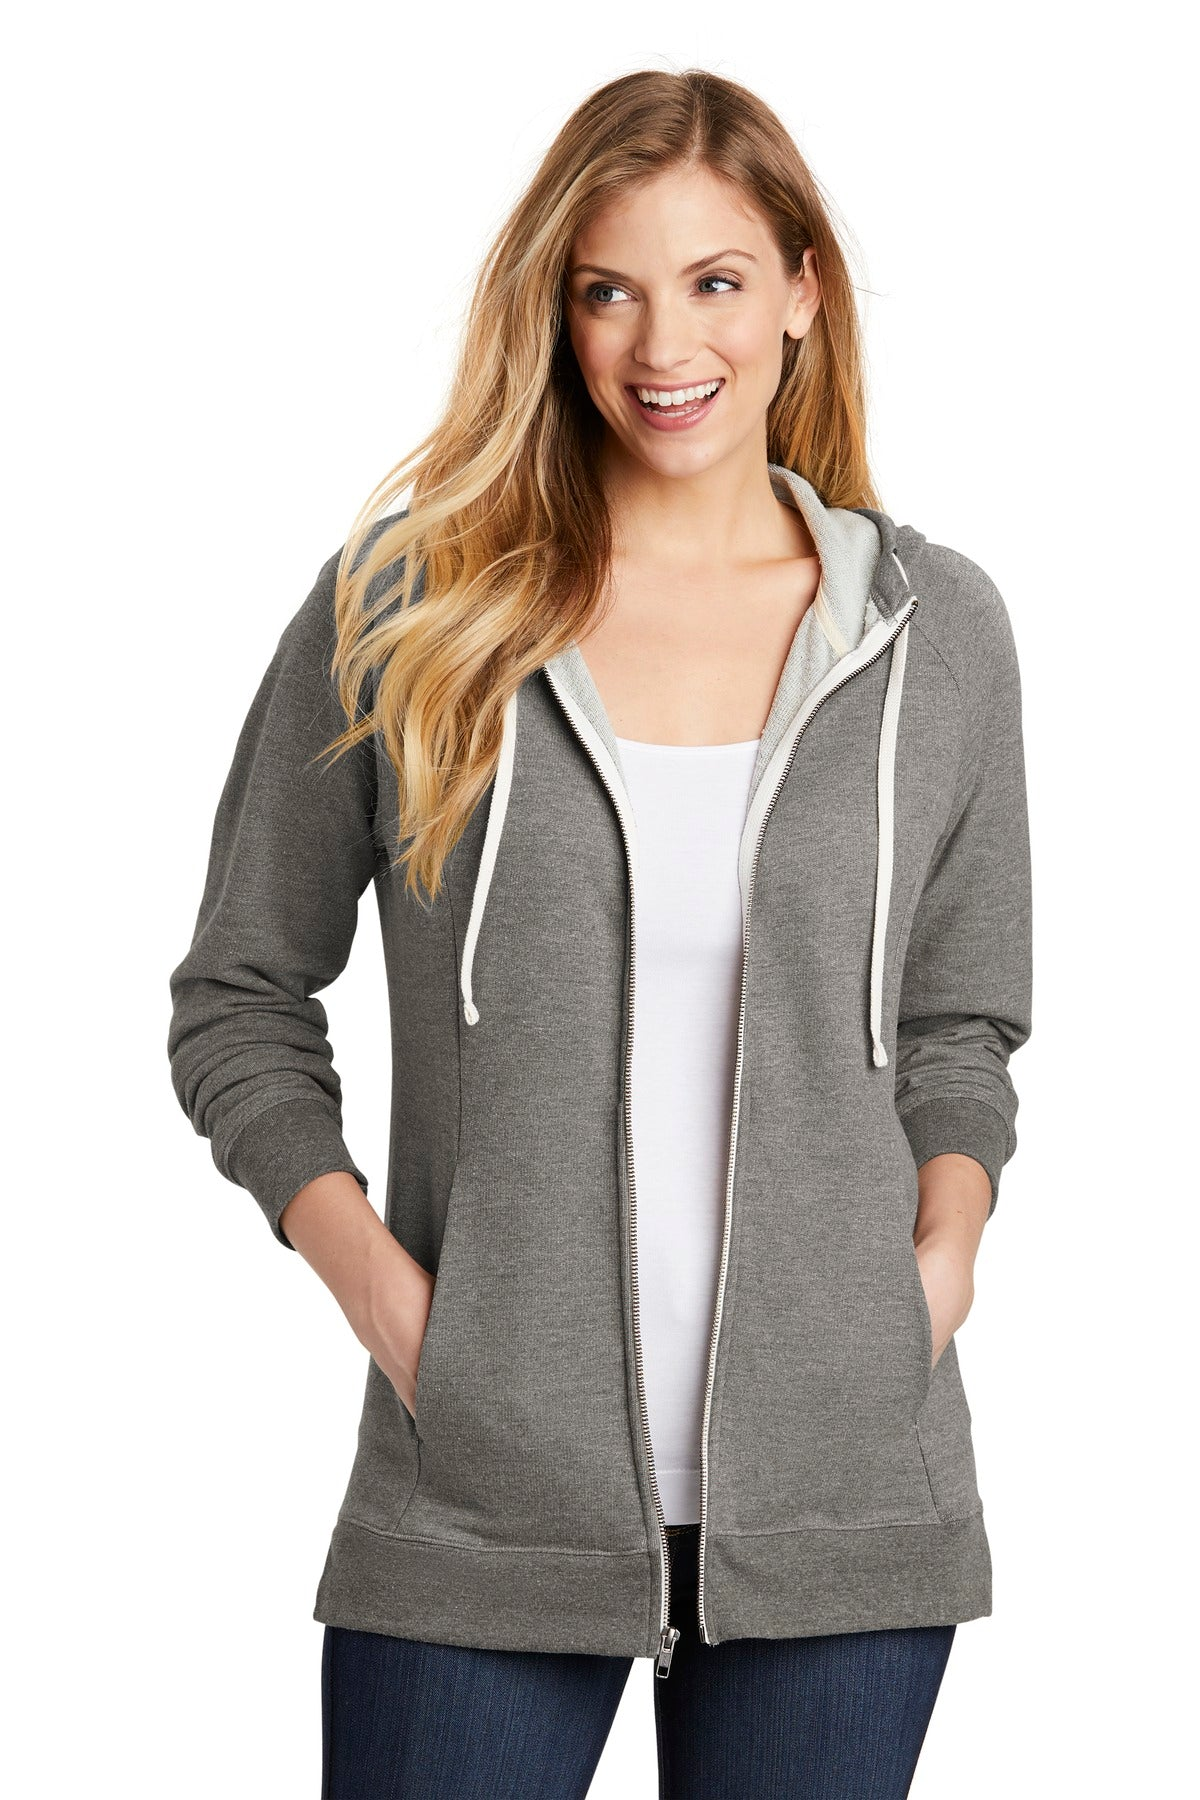 District ® Women's Perfect Tri ® French Terry Full-Zip Hoodie. DT456 - Aspire Zone